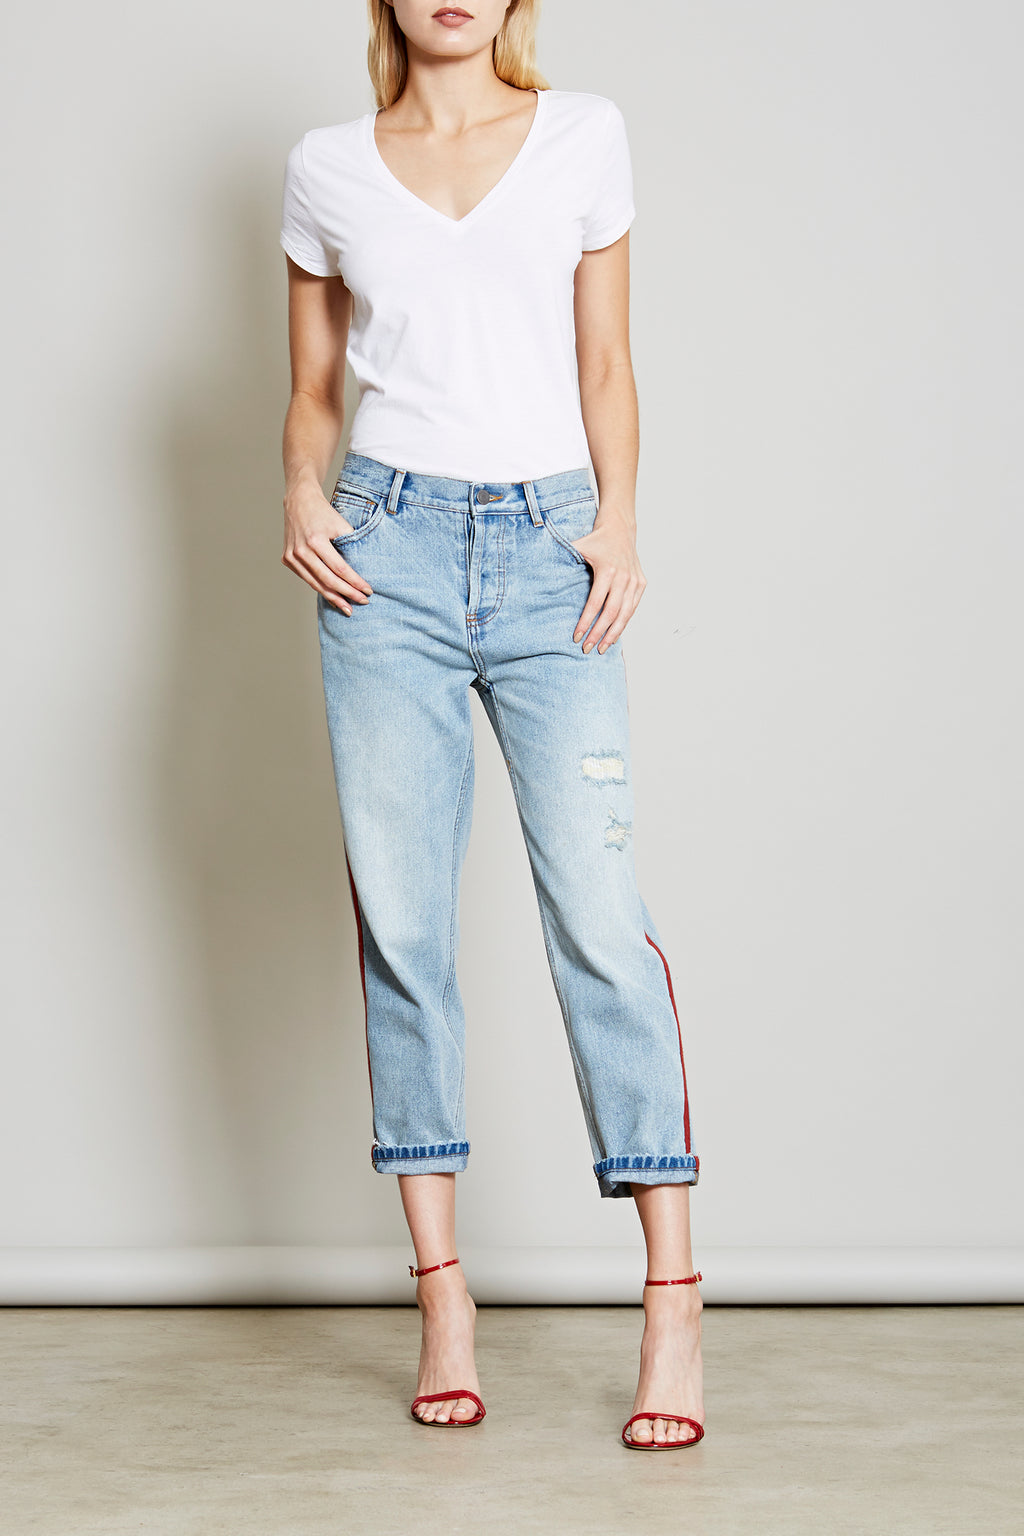 Robert Rodriguez Studio Resort 2018 Distressed Boyfriend Jean